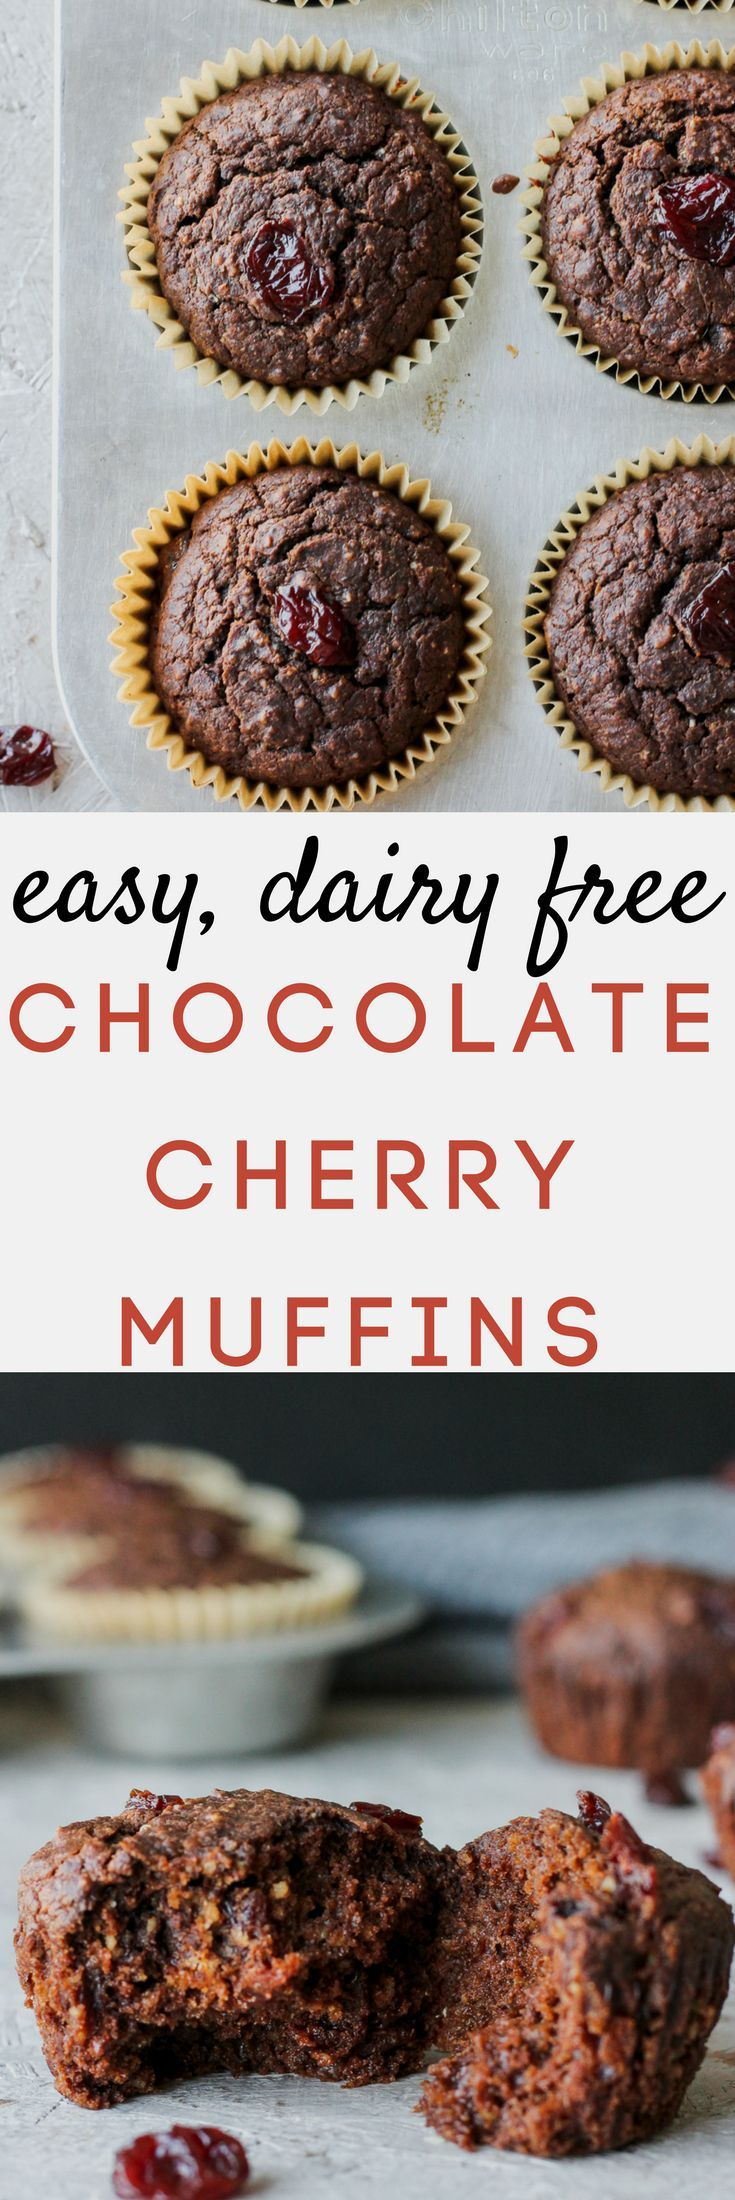 Easy dairy-free chocolate cherry muffins made with whole wheat flour, finely ground oatmeal, and naturally sweetened with honey. Making this recipe a healthy breakfast or midday snack to meal prep for a busy week!